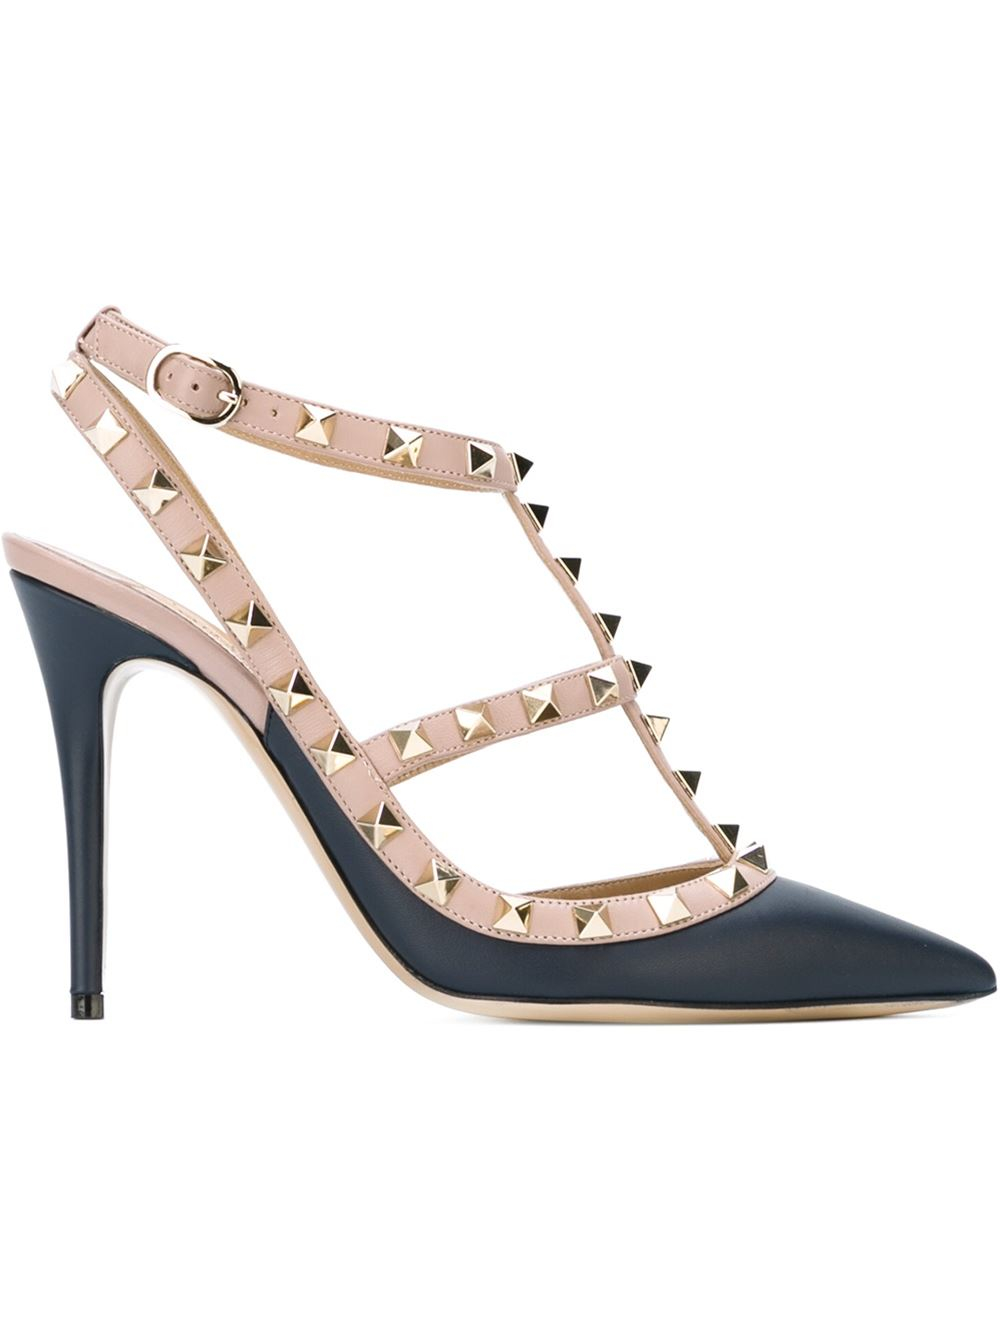 valentino 39 rockstud 39 pumps in blue lyst. Black Bedroom Furniture Sets. Home Design Ideas